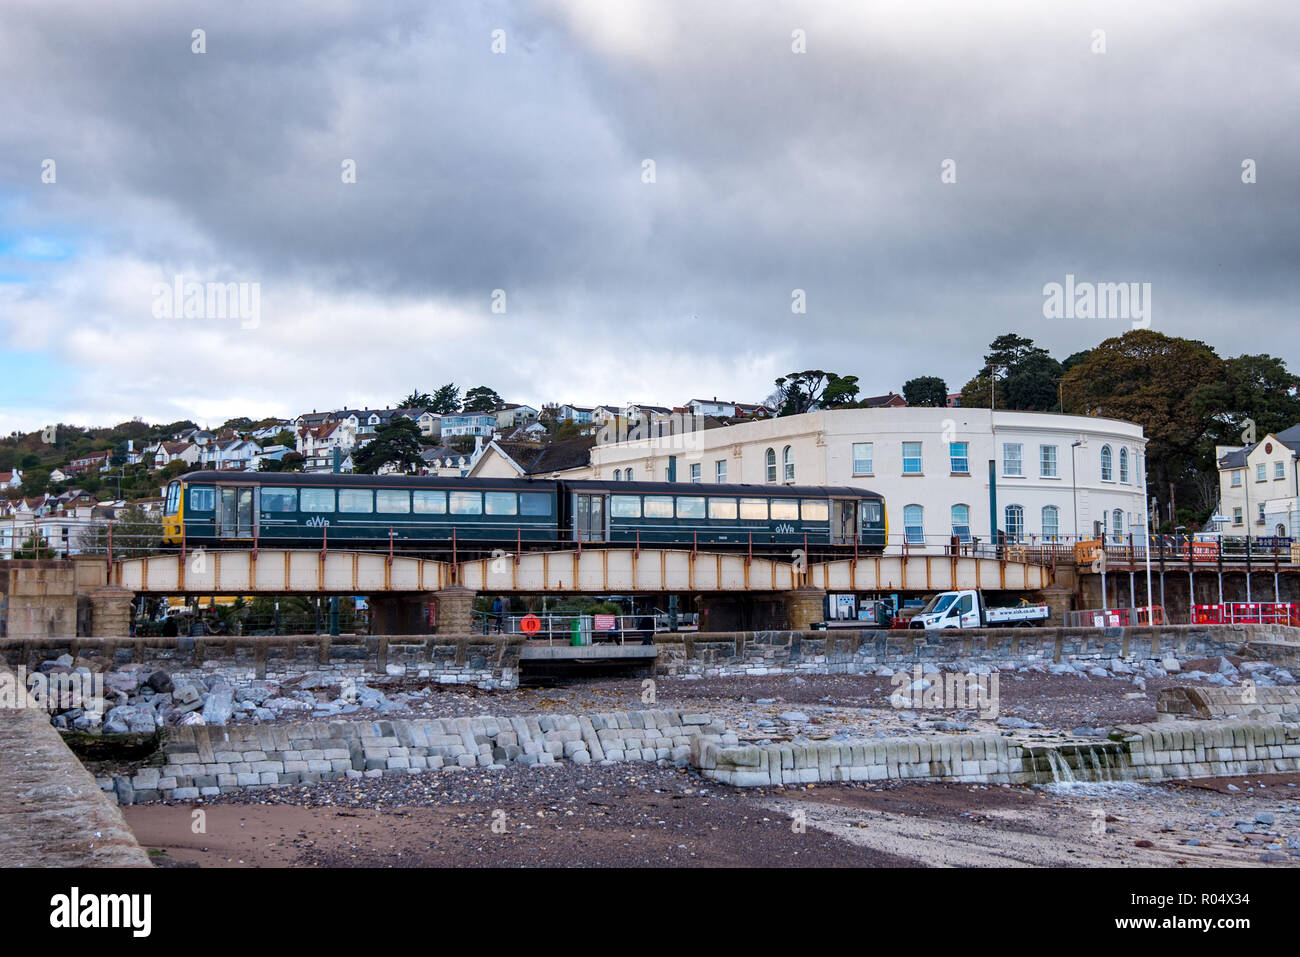 DAWLISH, DEVON, UK - 26OCT2018: GWR Class 143 Pacer Train approachin Dawlish Station from the South. - Stock Image